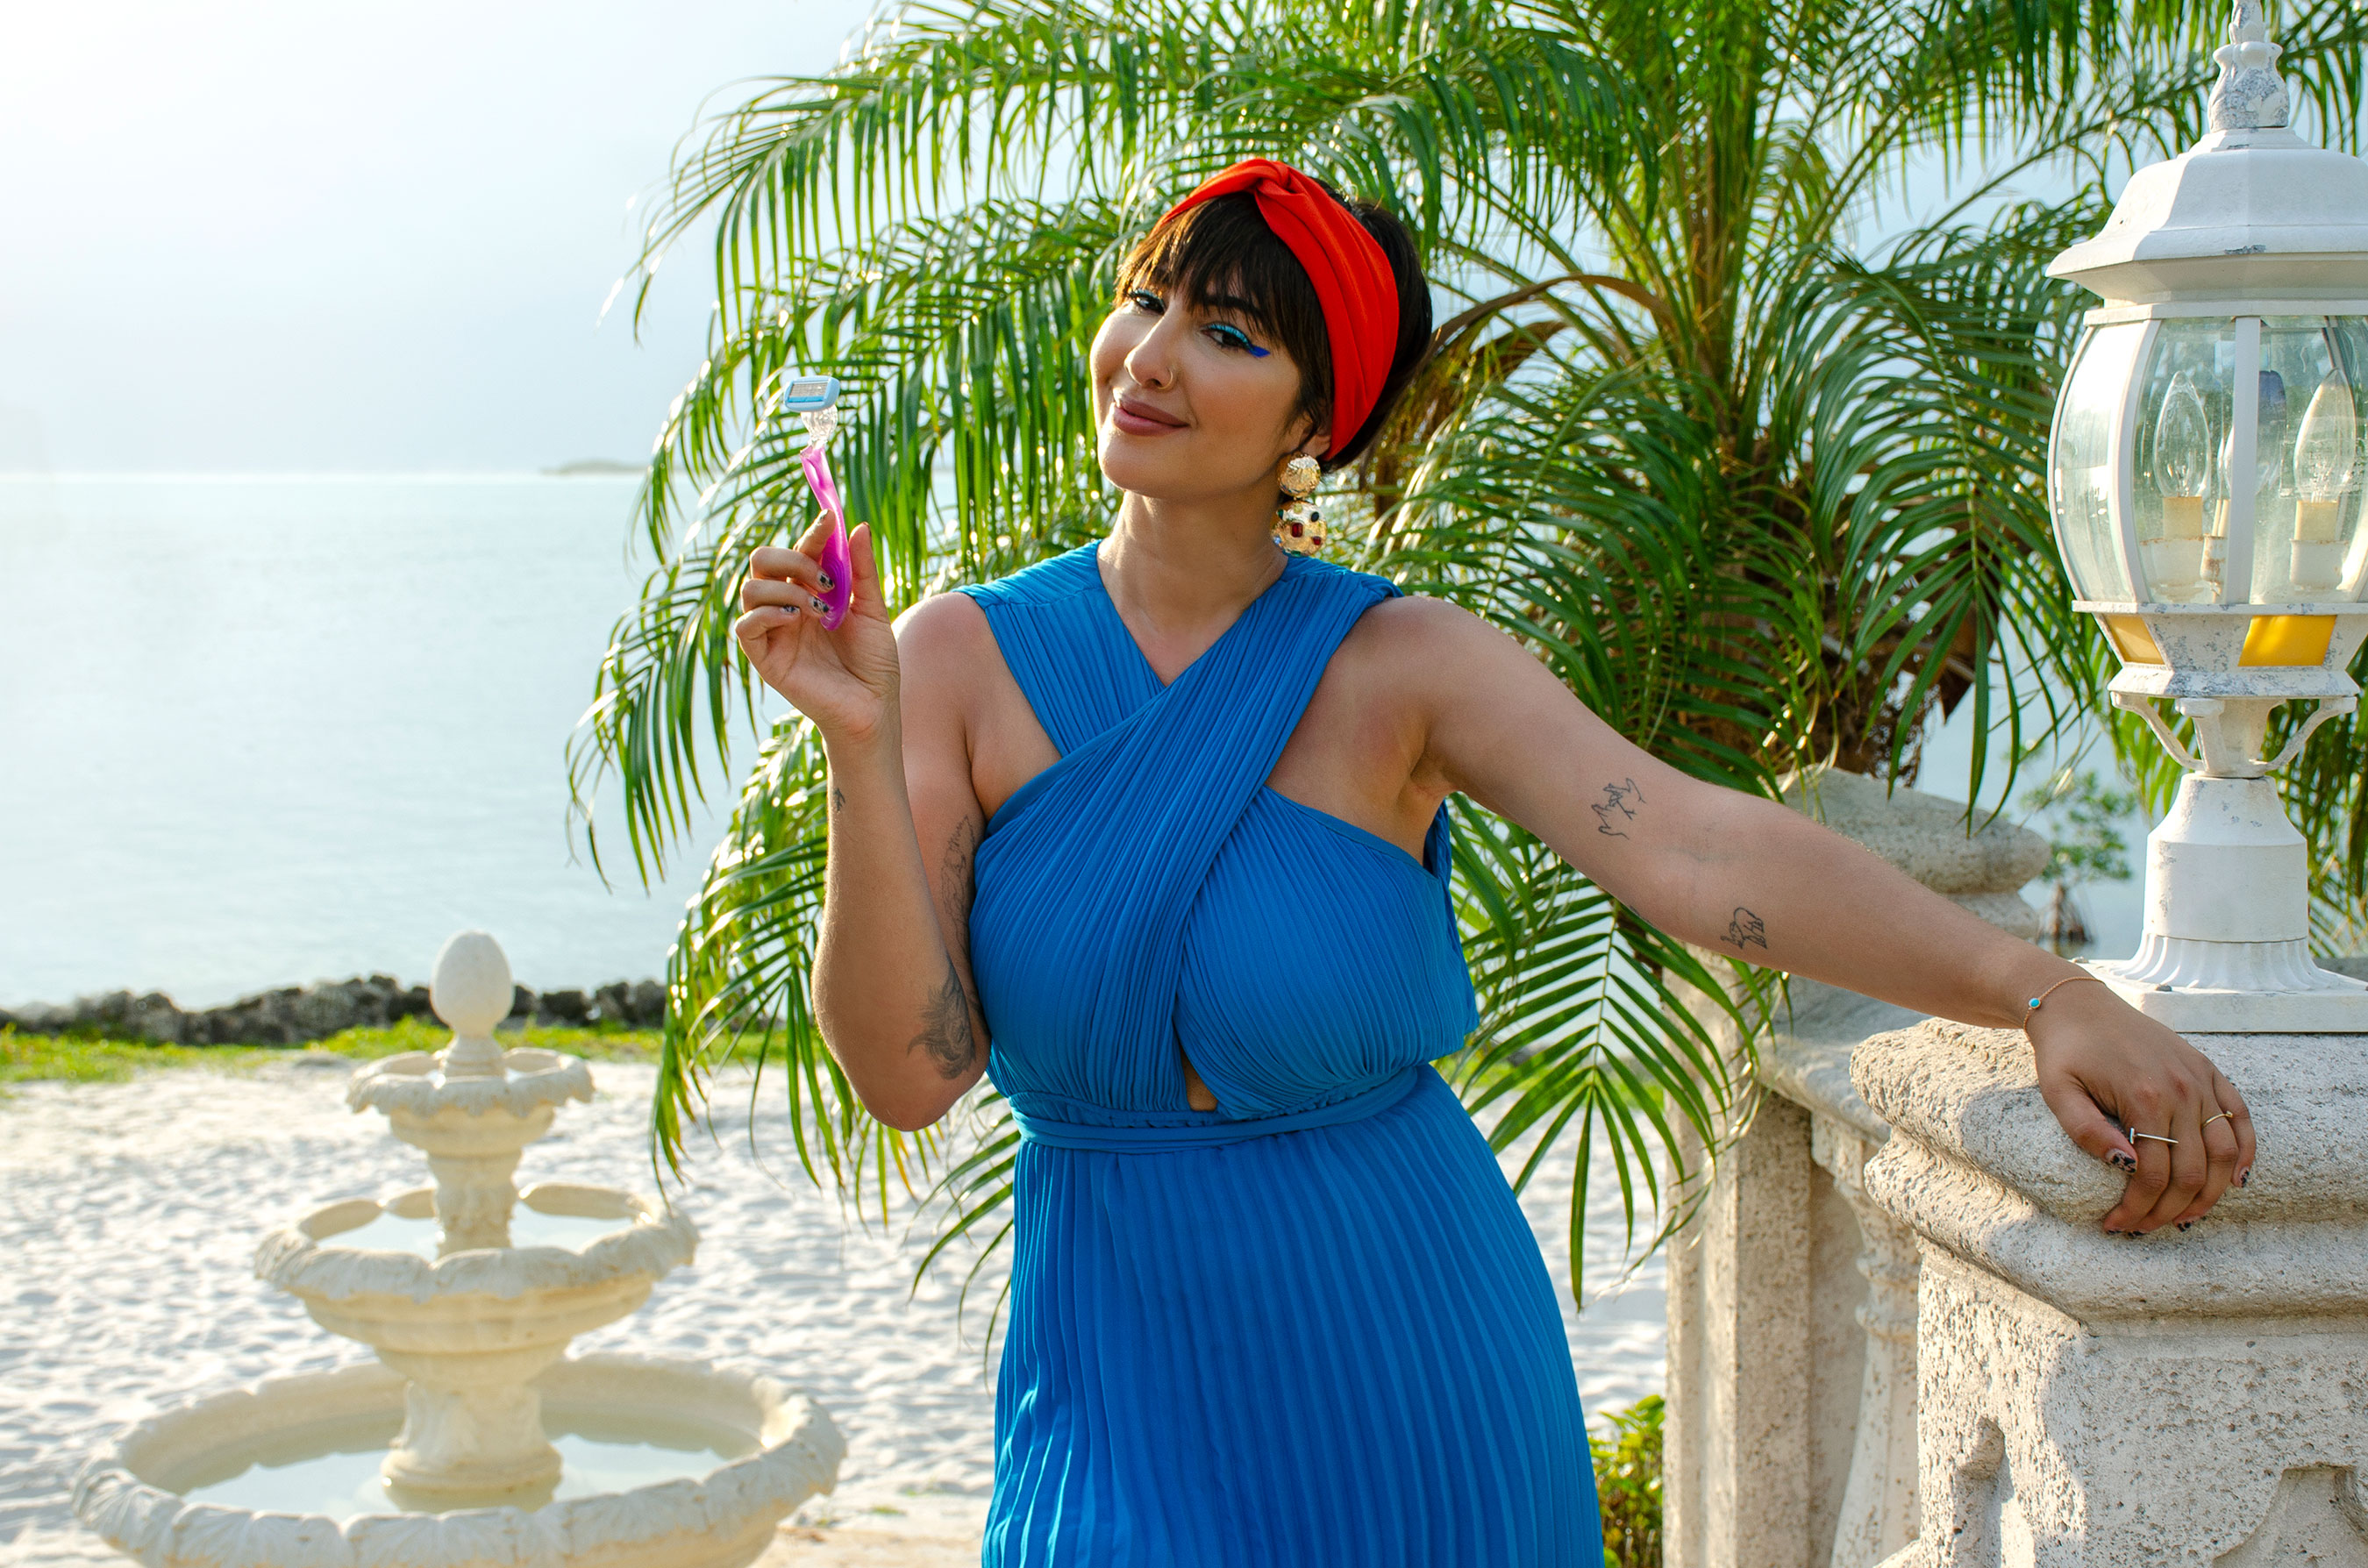 """Schick® Hydro Silk® launches """"Feelin' Myself Island"""" a humorous riff on summer reality dating shows to celebrate inner confidence. The campaign featuring Jackie Cruz turns the tables on typical tropes encouraging women to enter to win solo private island experience to fall even more in love with themselves."""